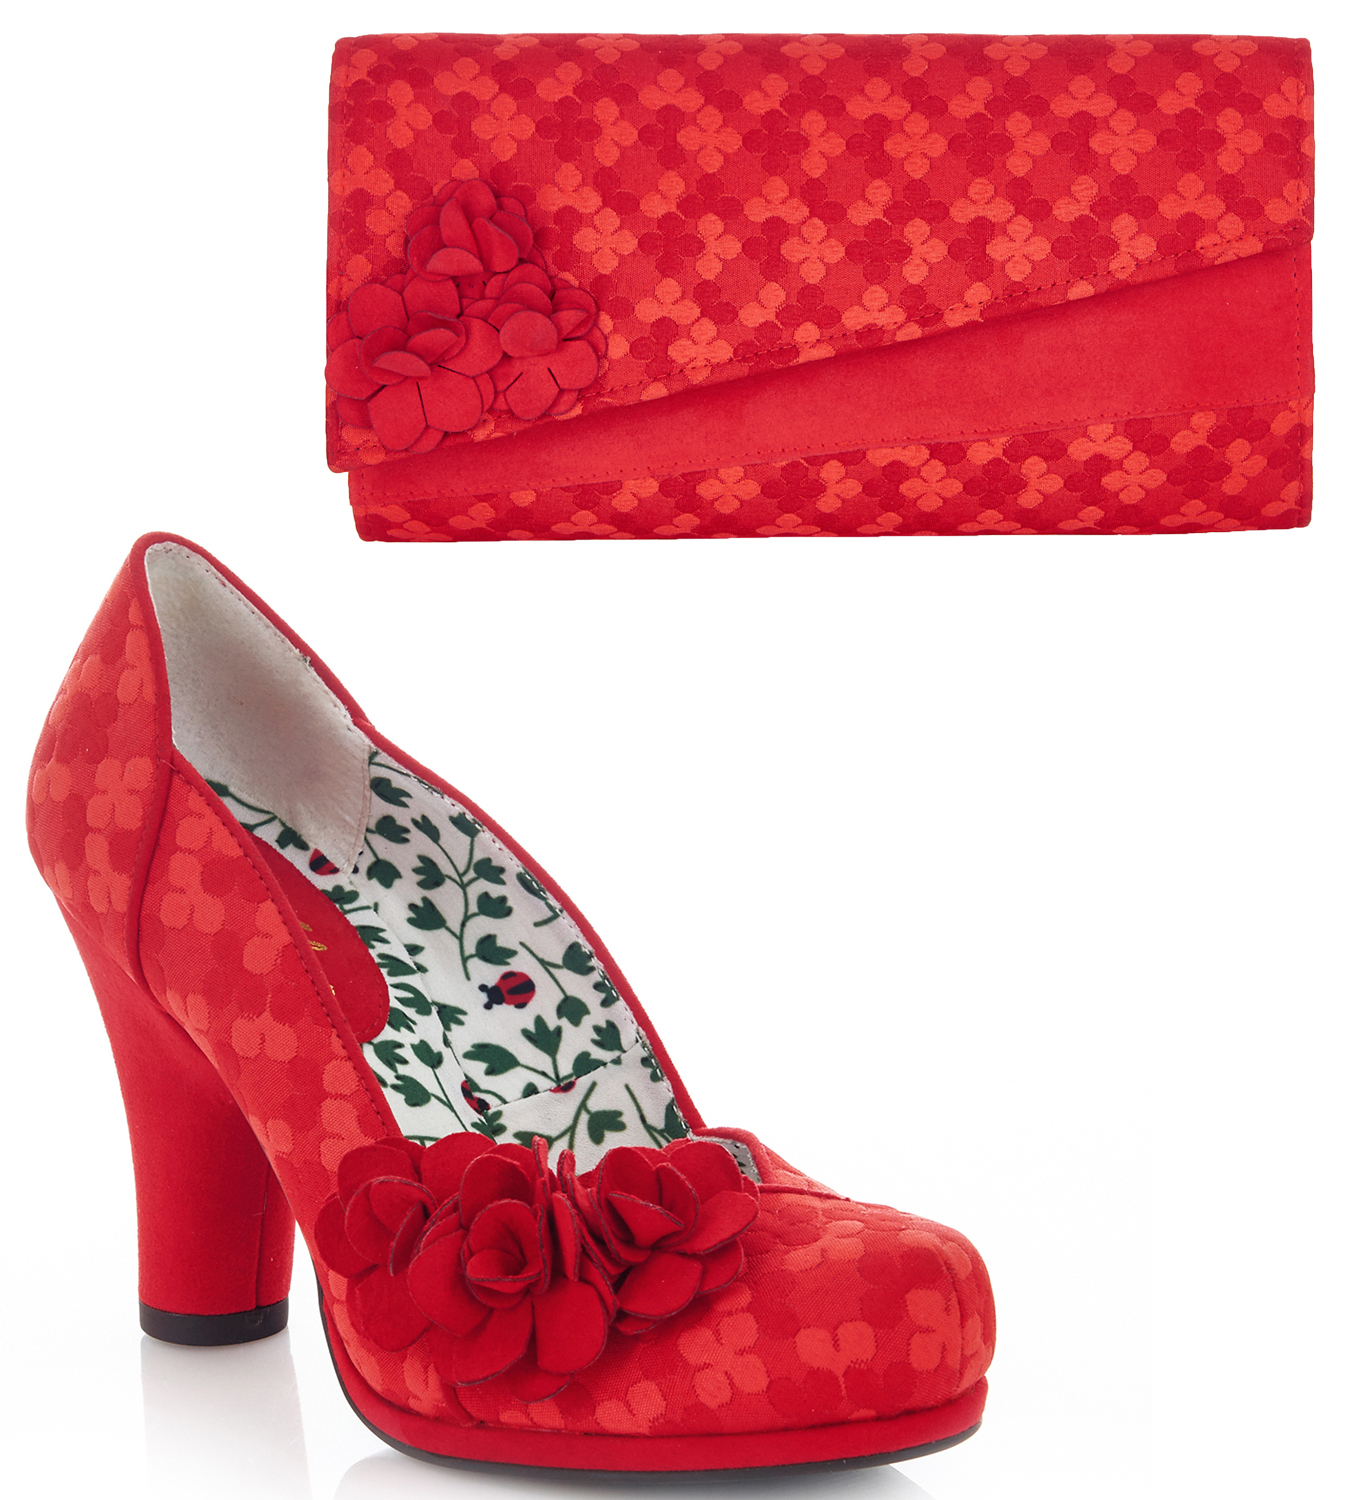 Ruby Shoo Charlotte High Heel Court Schuhes Matching & Matching Schuhes Oxford Bag UK3-9 36-42 91cc52